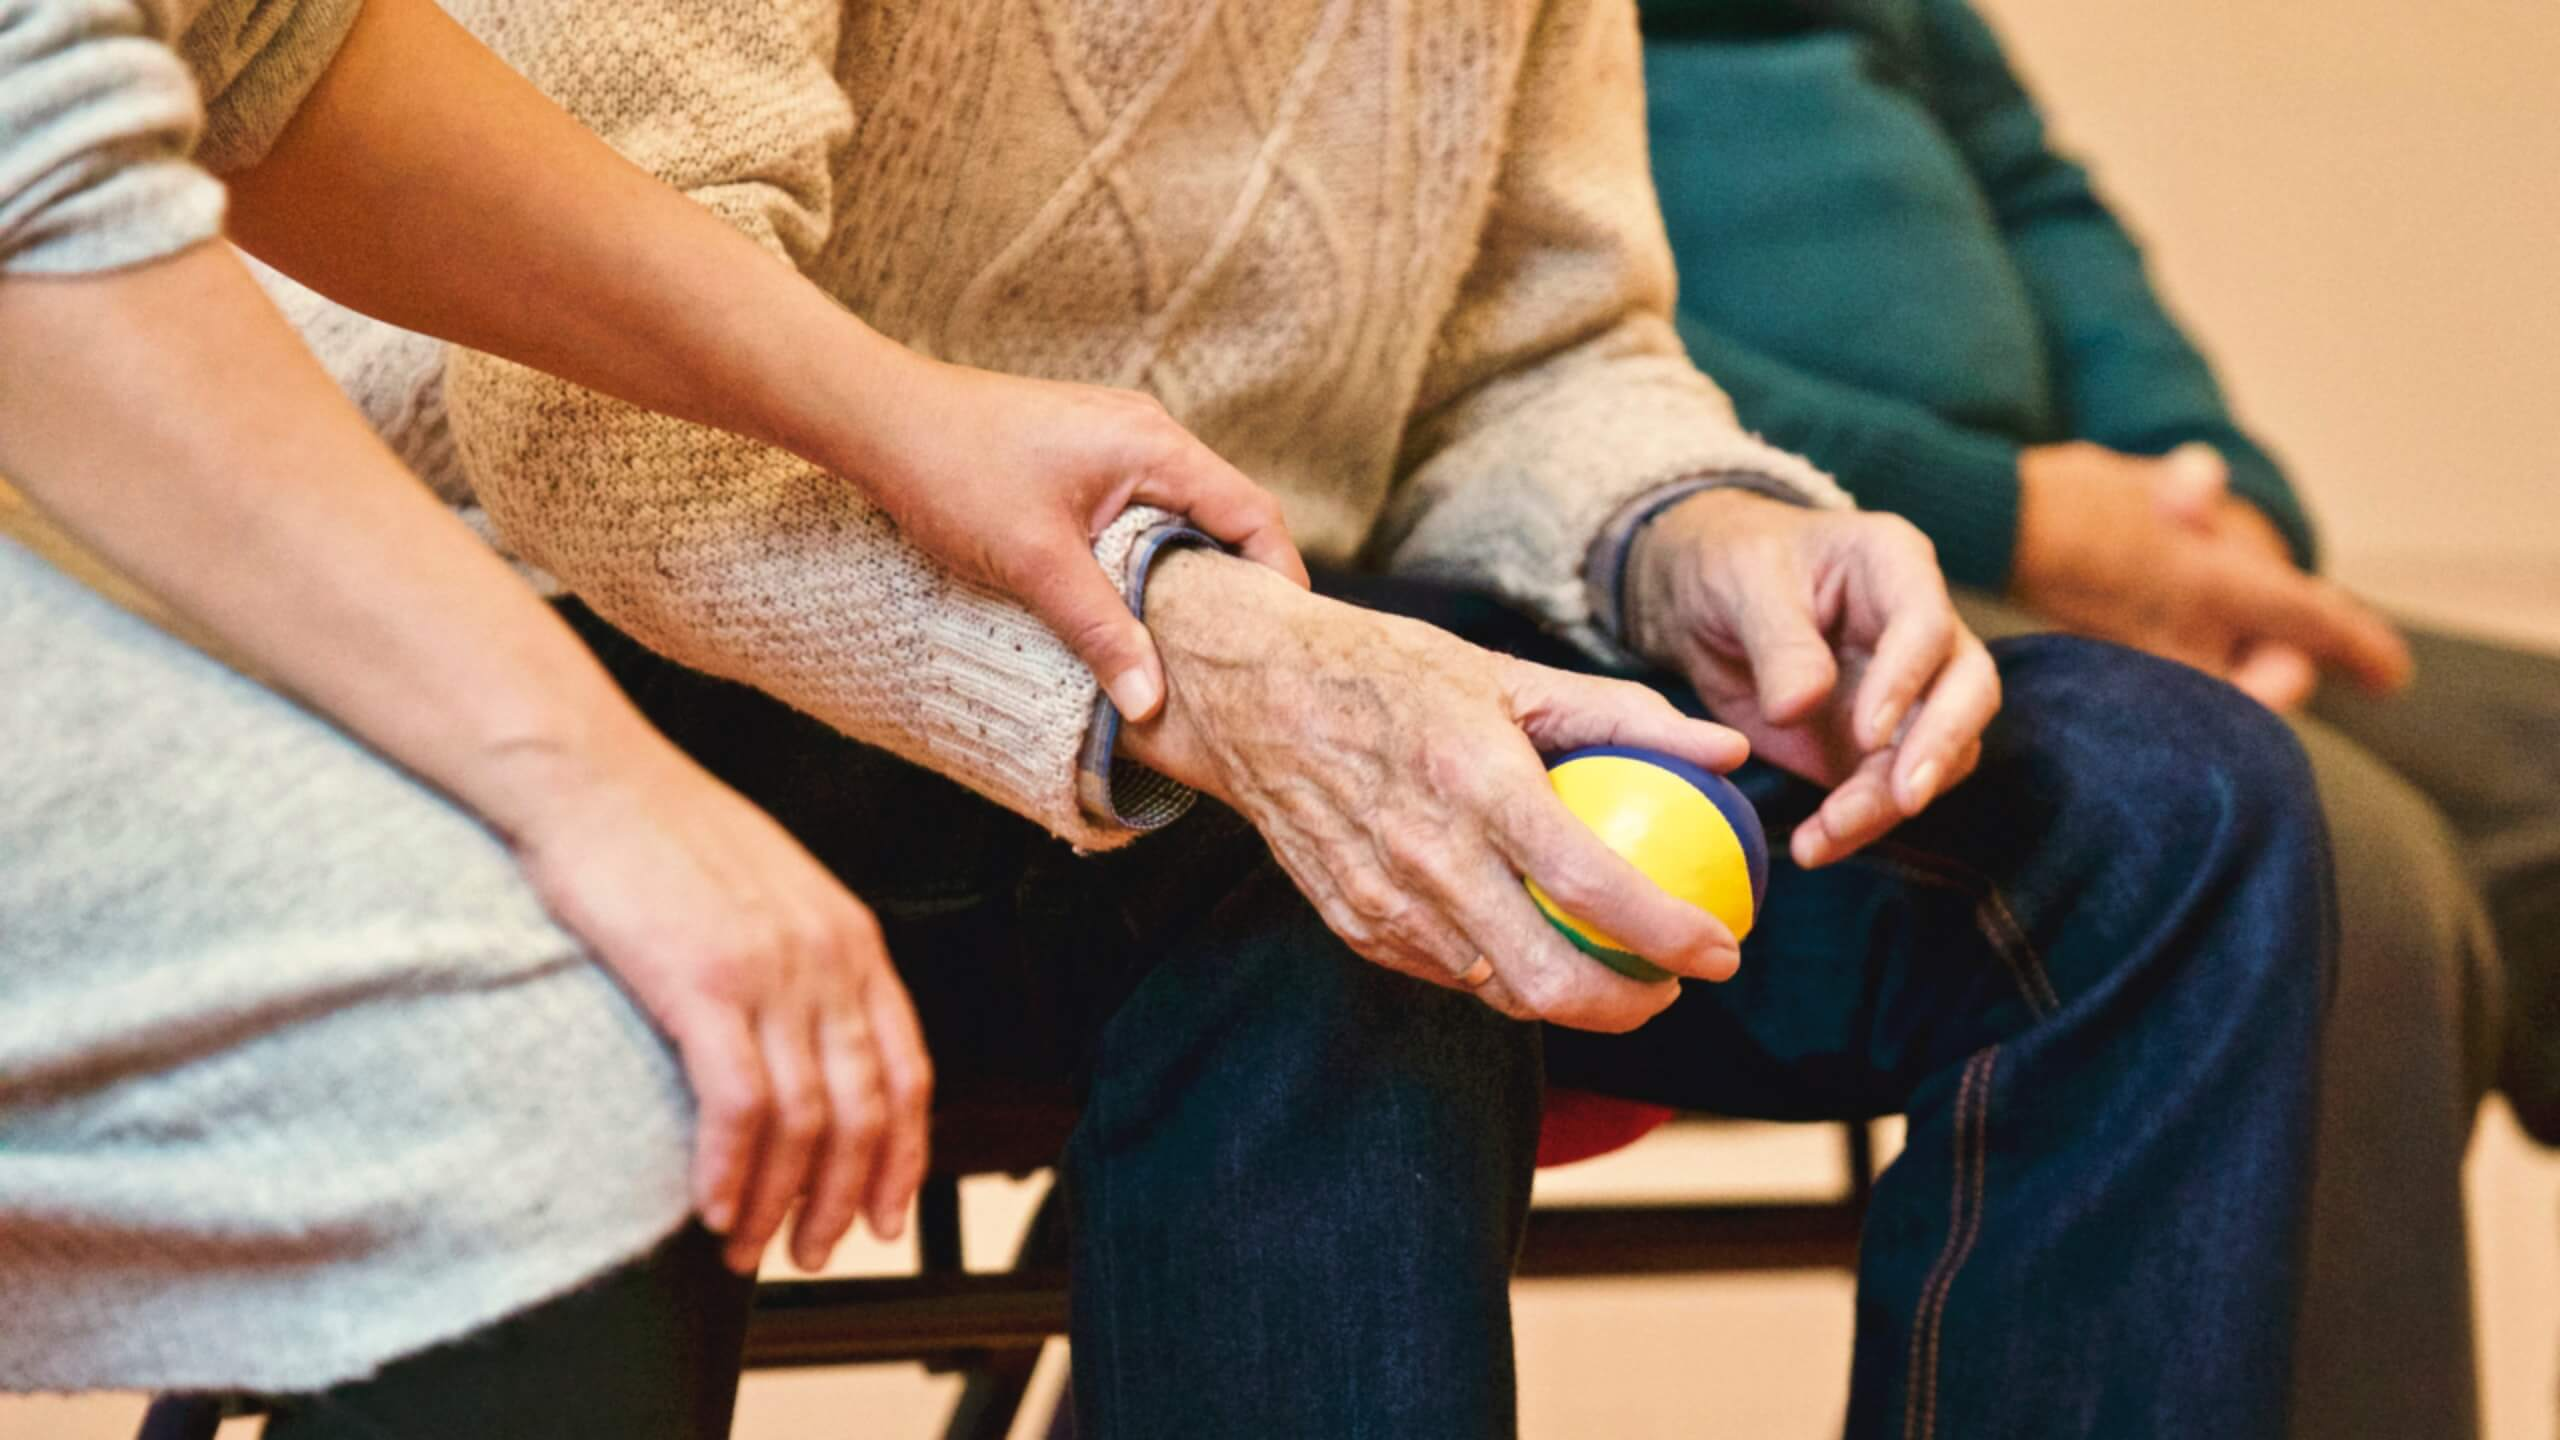 A caretaker working with a resident in a senior living facility.